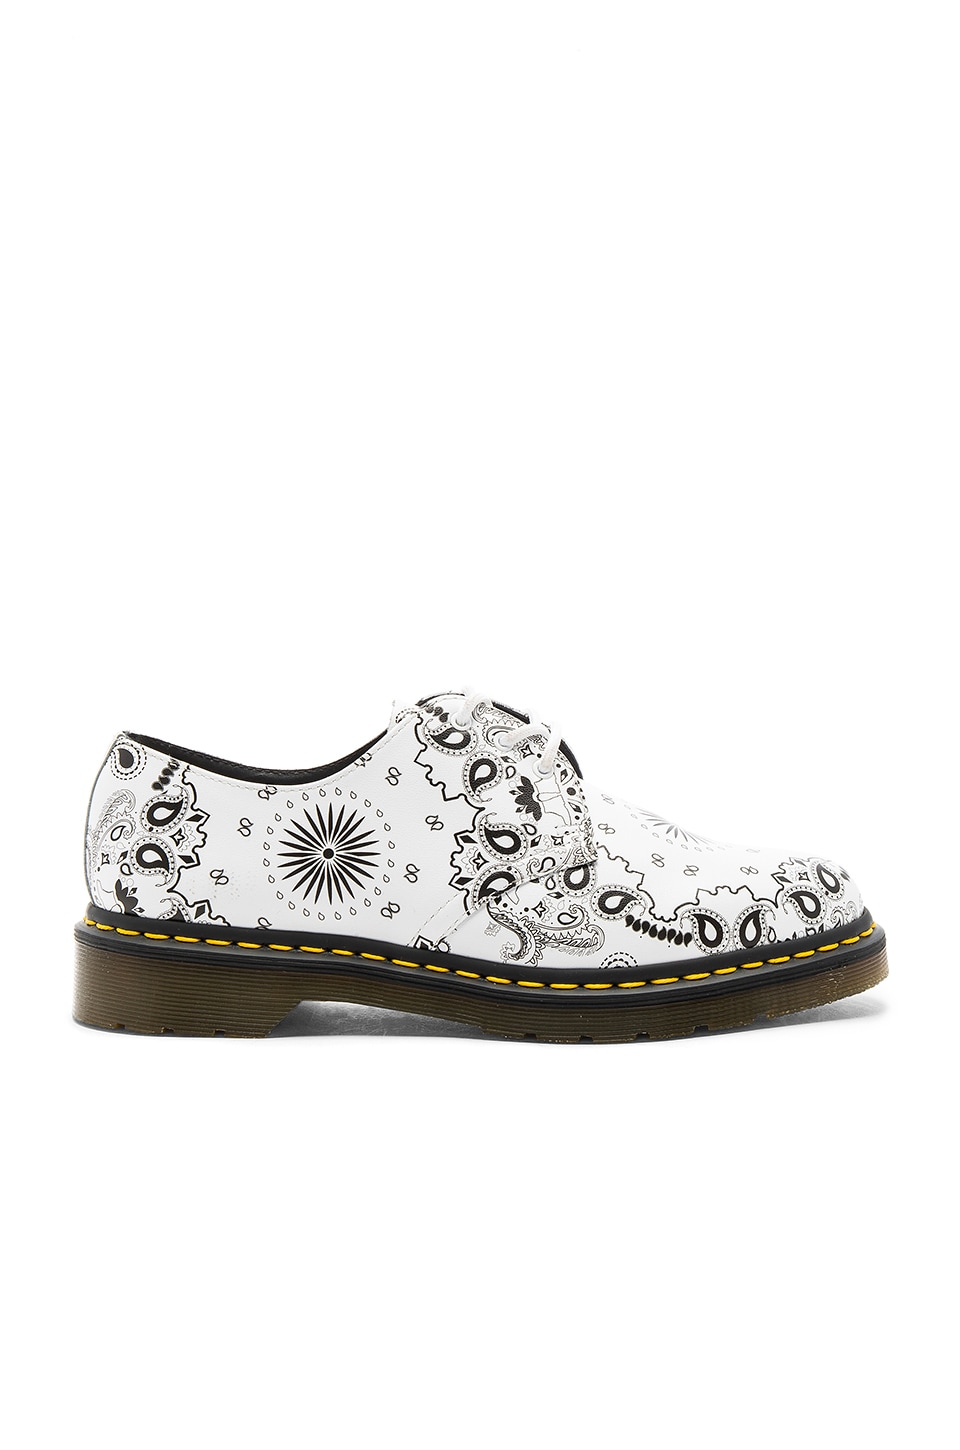 1461 3 Eye by Dr. Martens